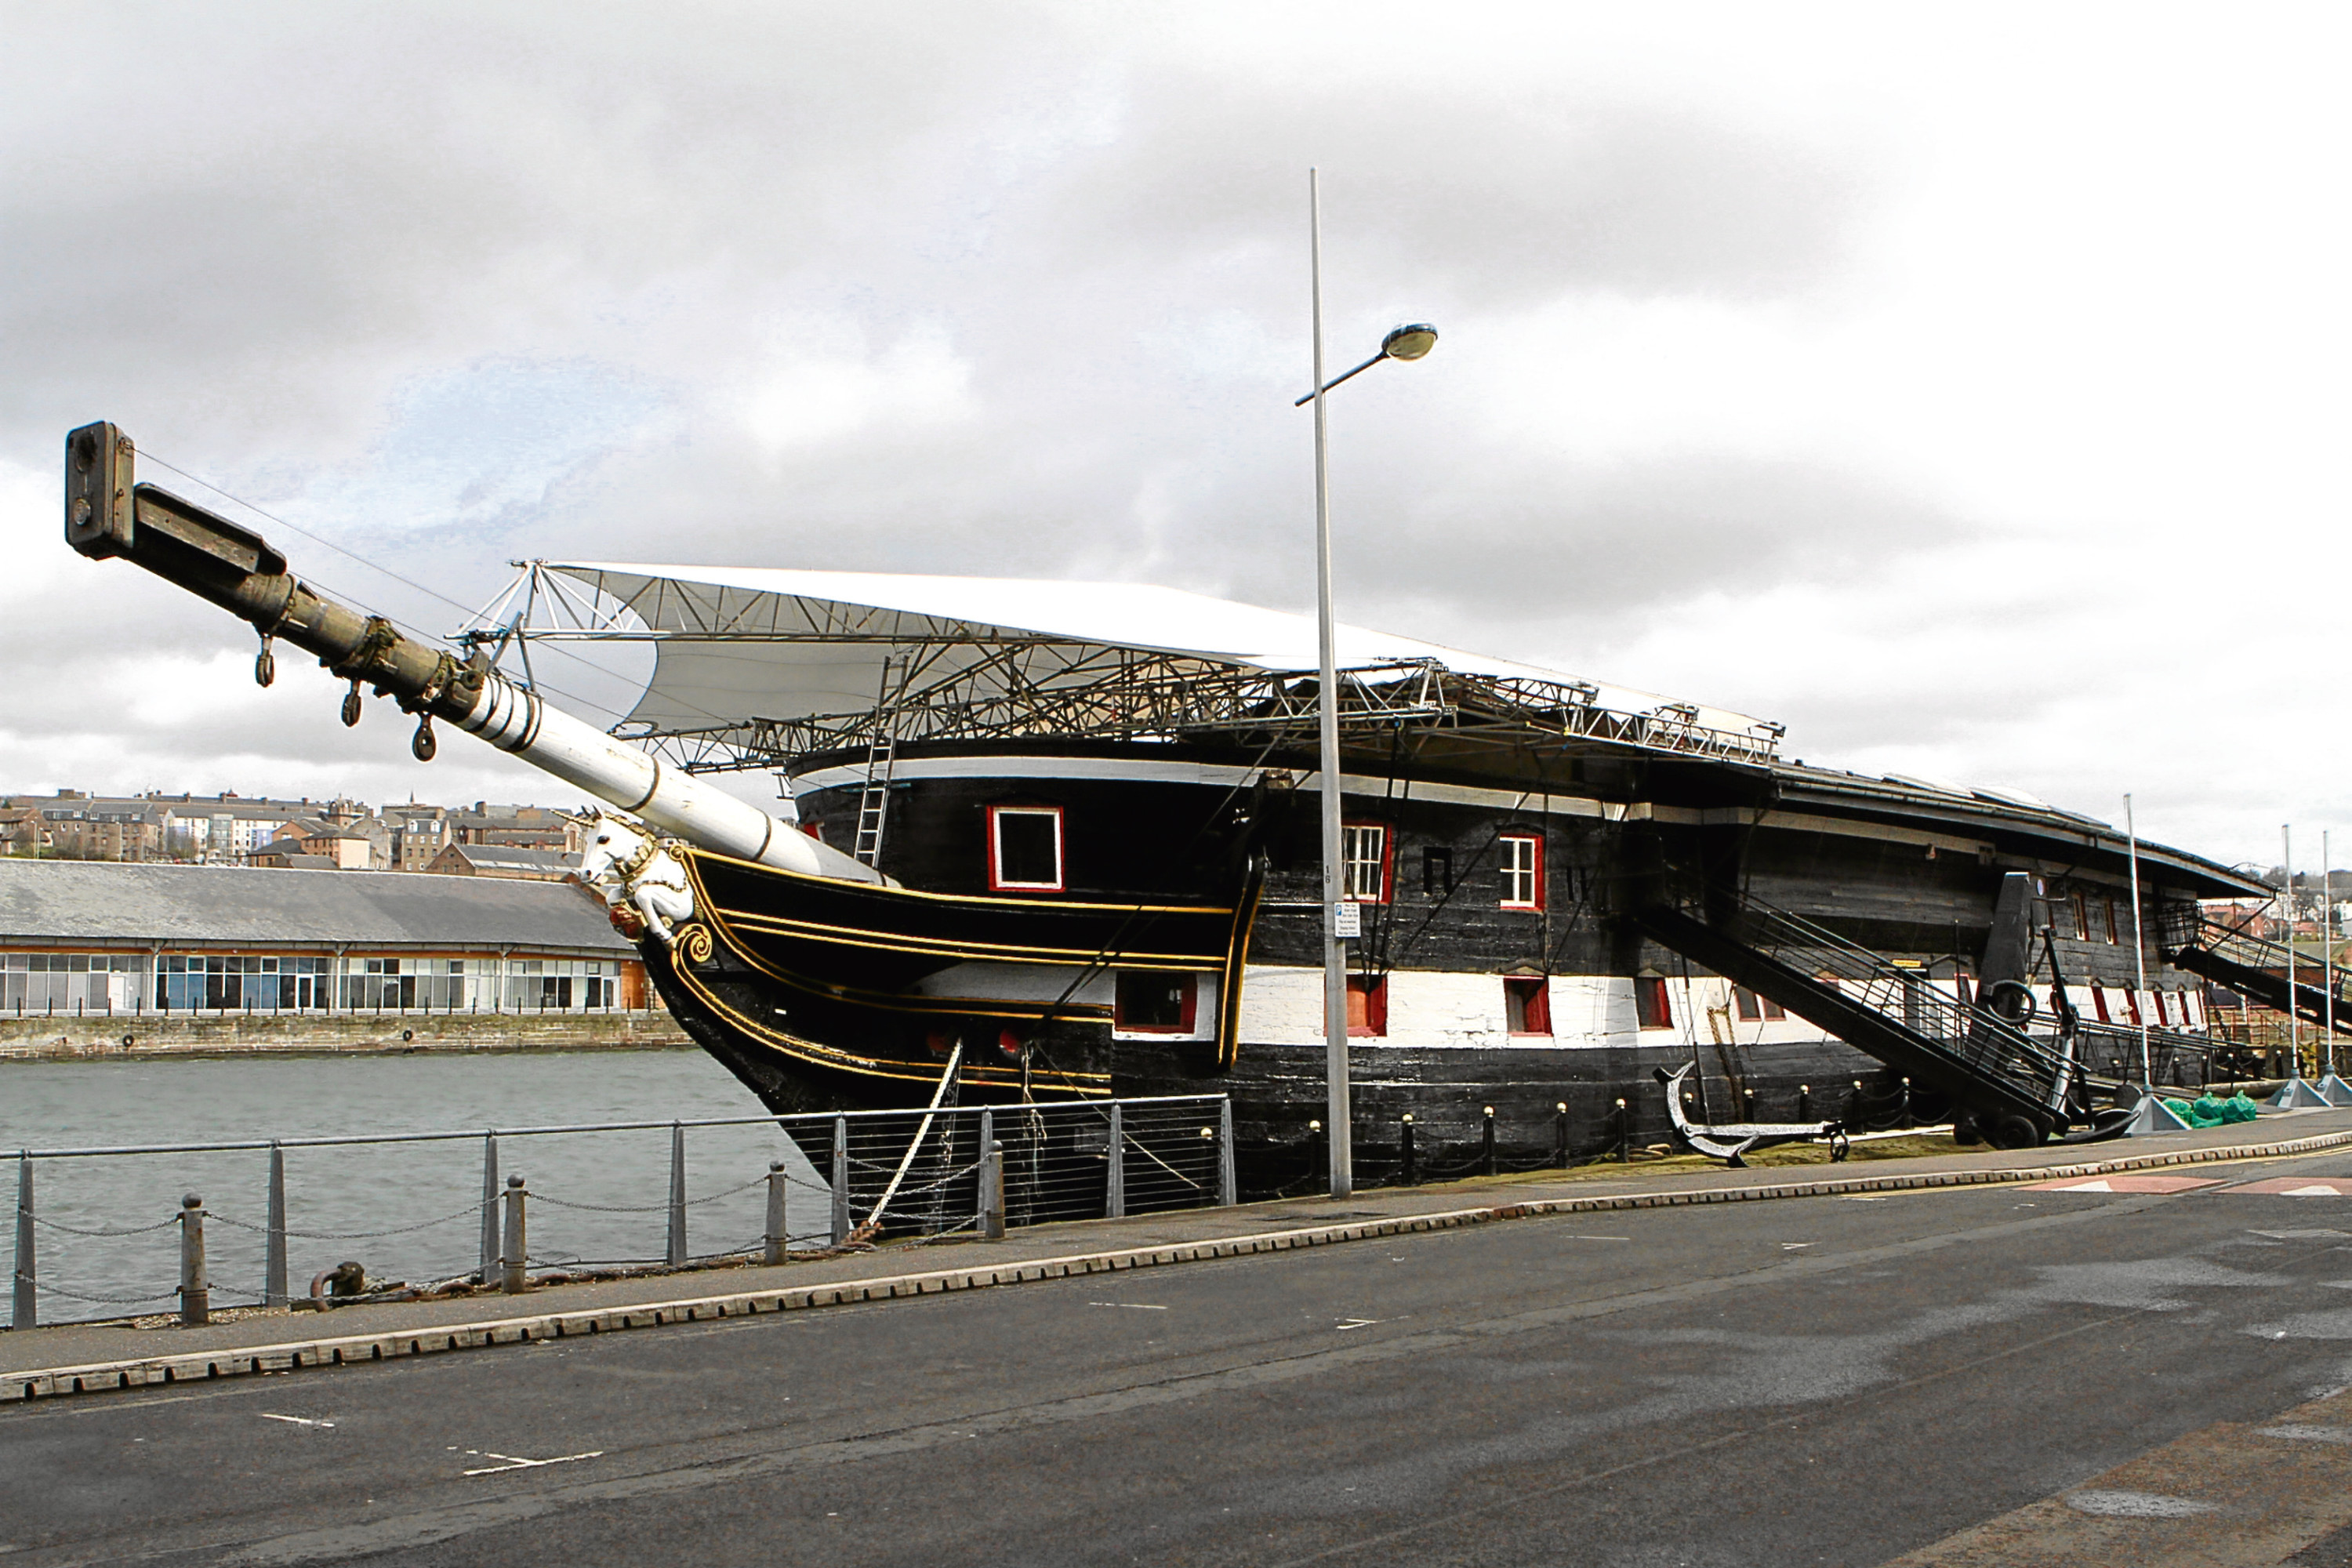 Part of the film is shot at the Frigate Unicorn